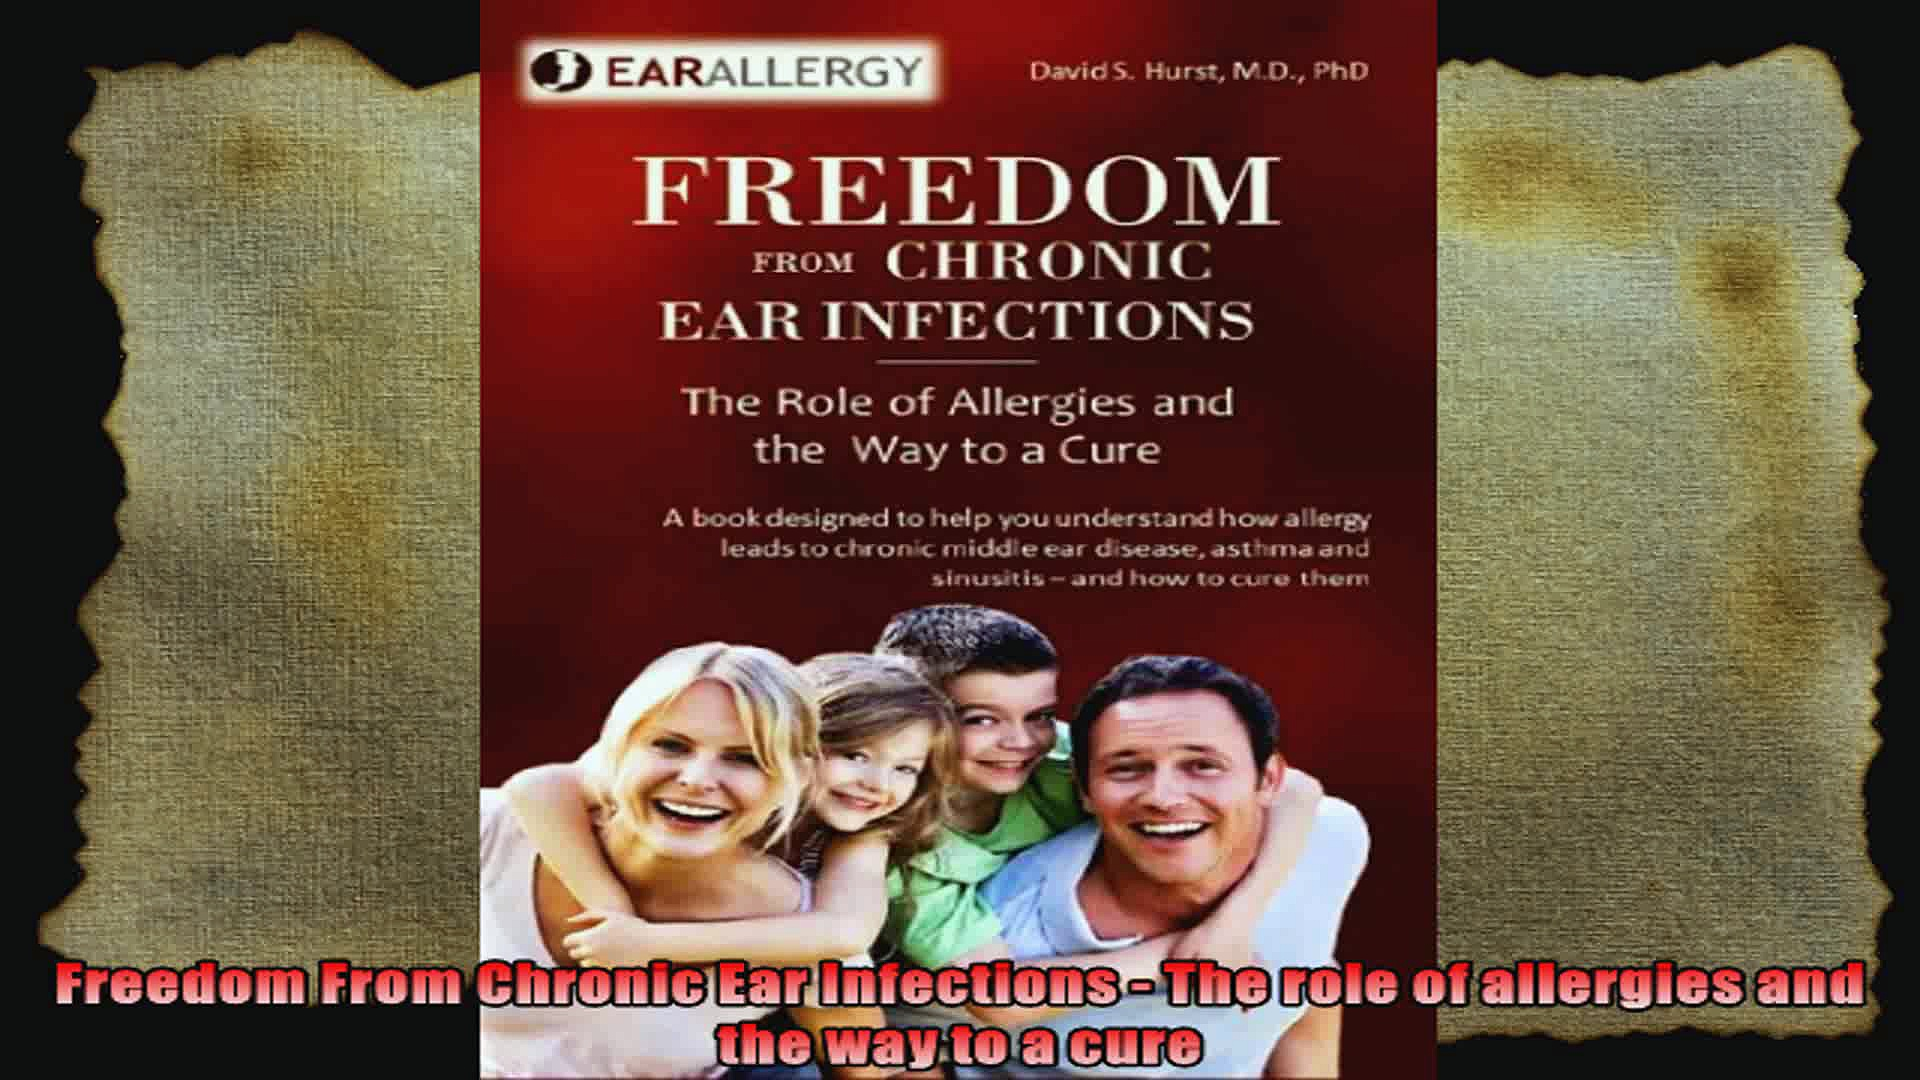 Freedom From Chronic Ear Infections  The role of allergies and the way to a cure